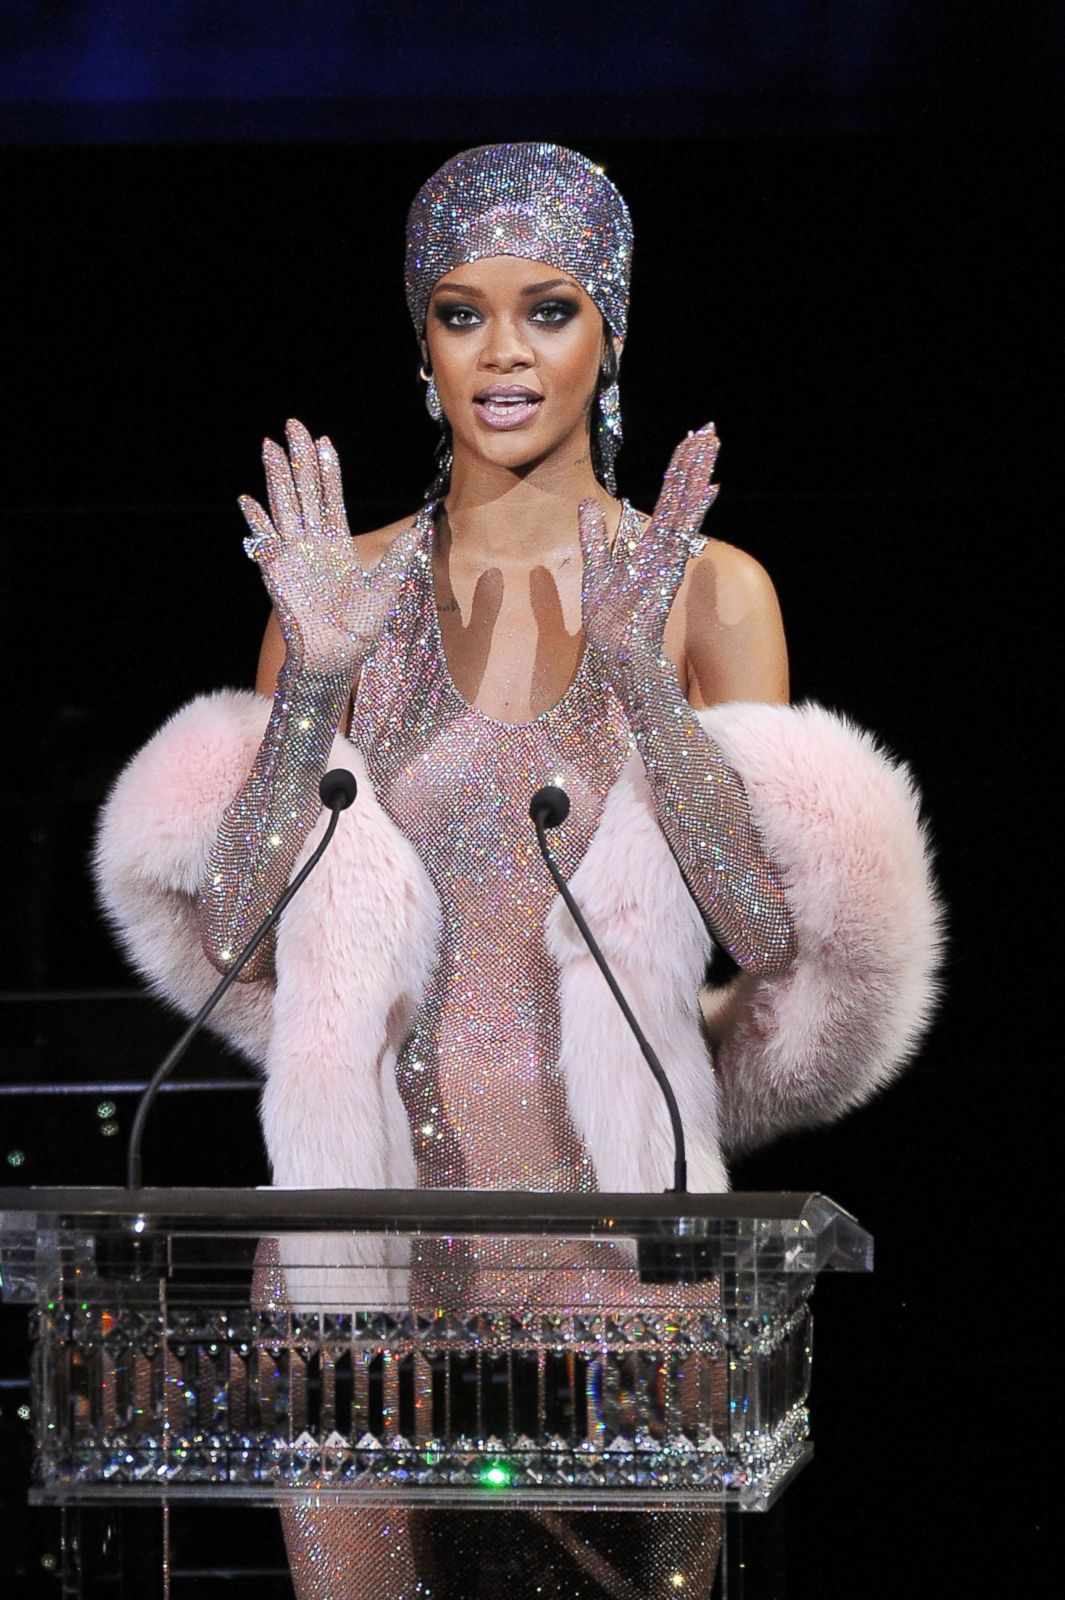 rihanna leaves little to the imagination with sheer dress